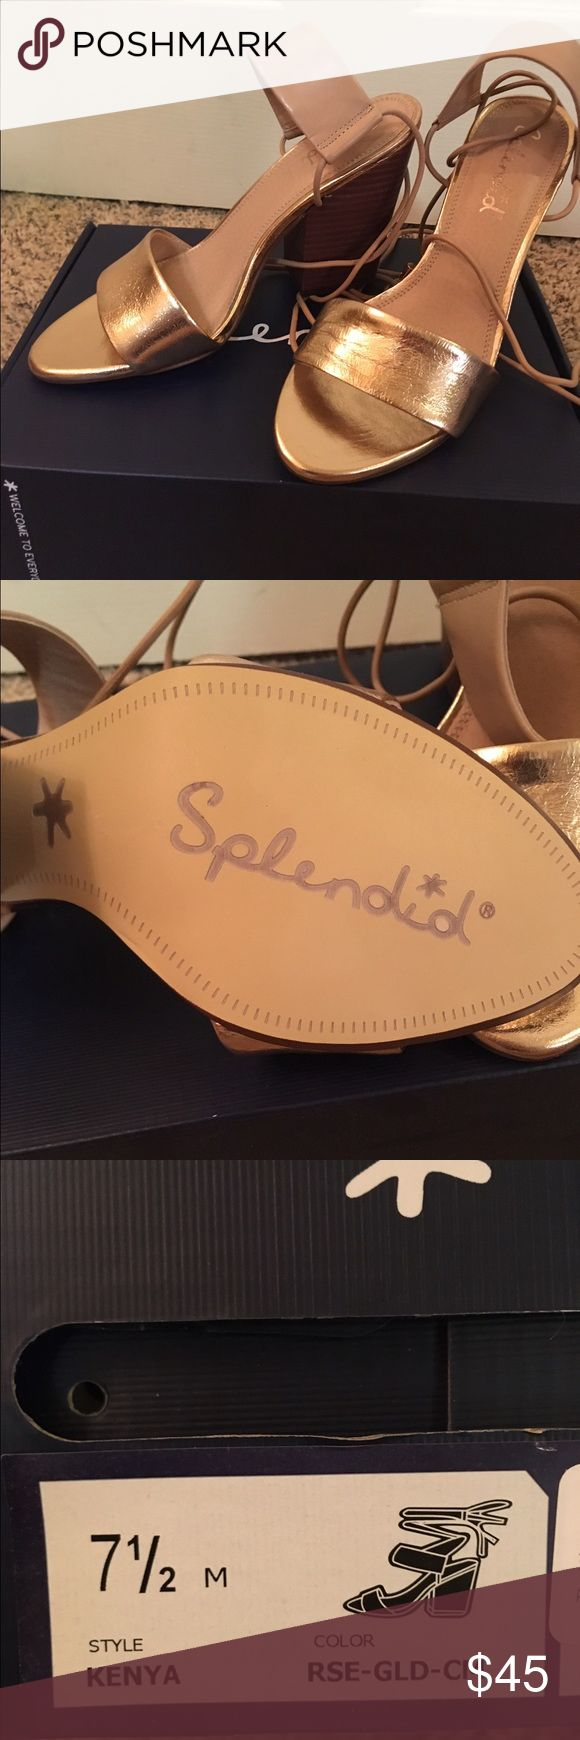 Splendid Rose Gold Dress Sandal with Heel Size 7.5 Splendid Rose Gold Dress Sandal with Heel, never worn (ordered online and color didn't quite match the dress). Splendid Shoes Heels